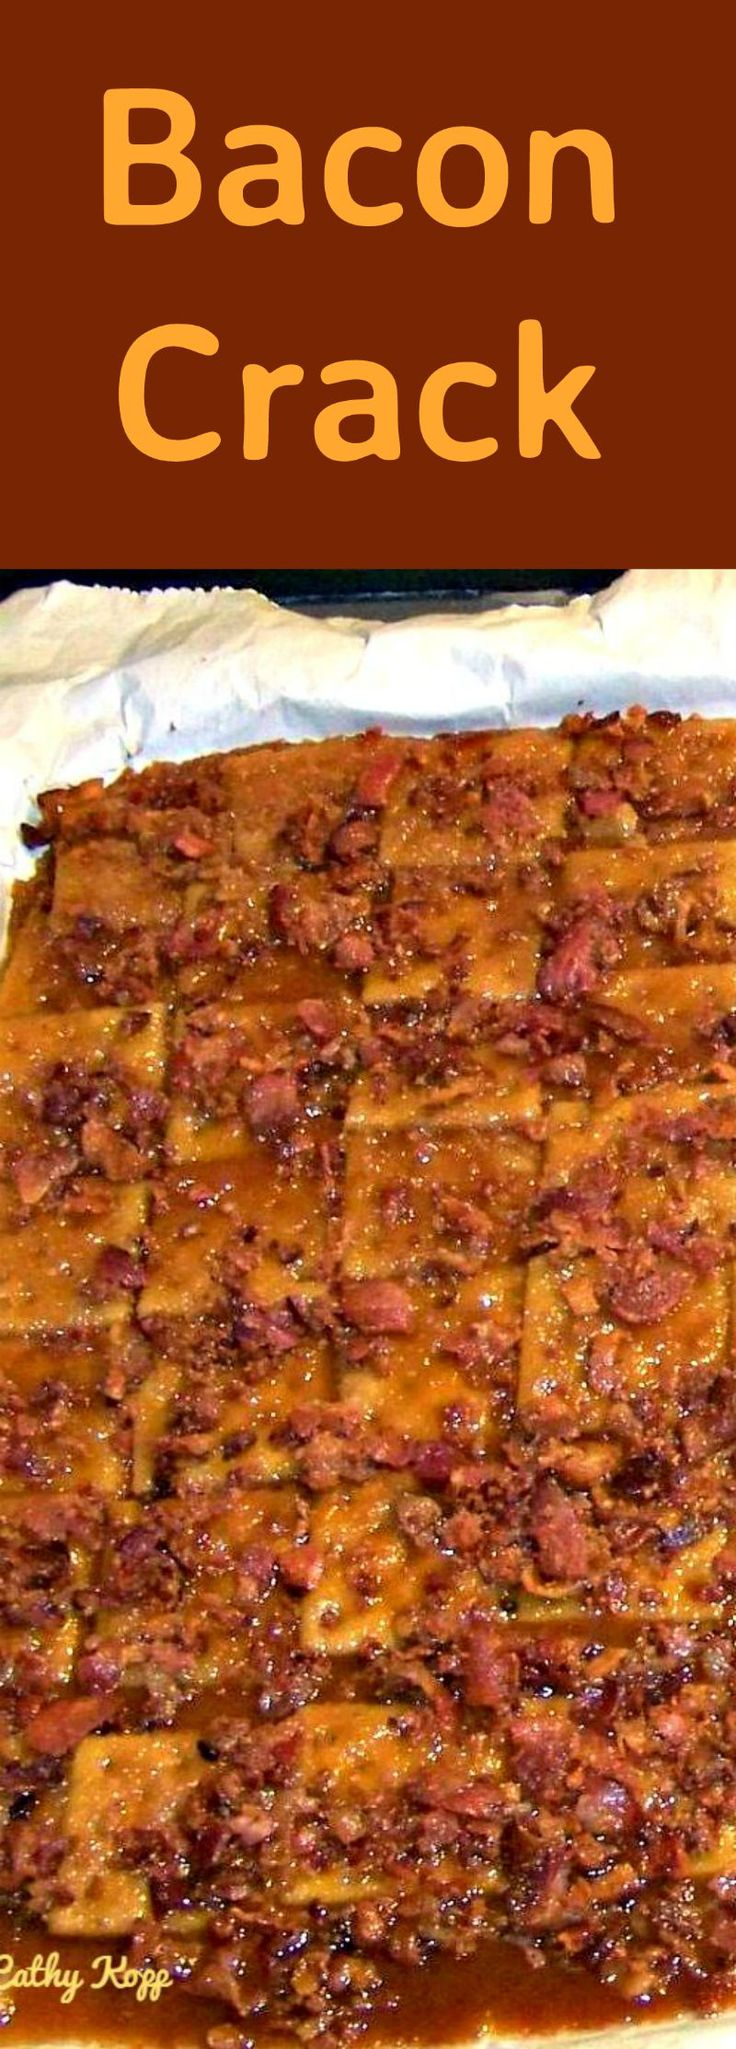 Bacon Crack. A.K.A Bacon Saltine Cracker Candy. If you've never tried this you're missing out! A great Candy treat for the holidays, pot lucks, parties! | Lovefoodies.com